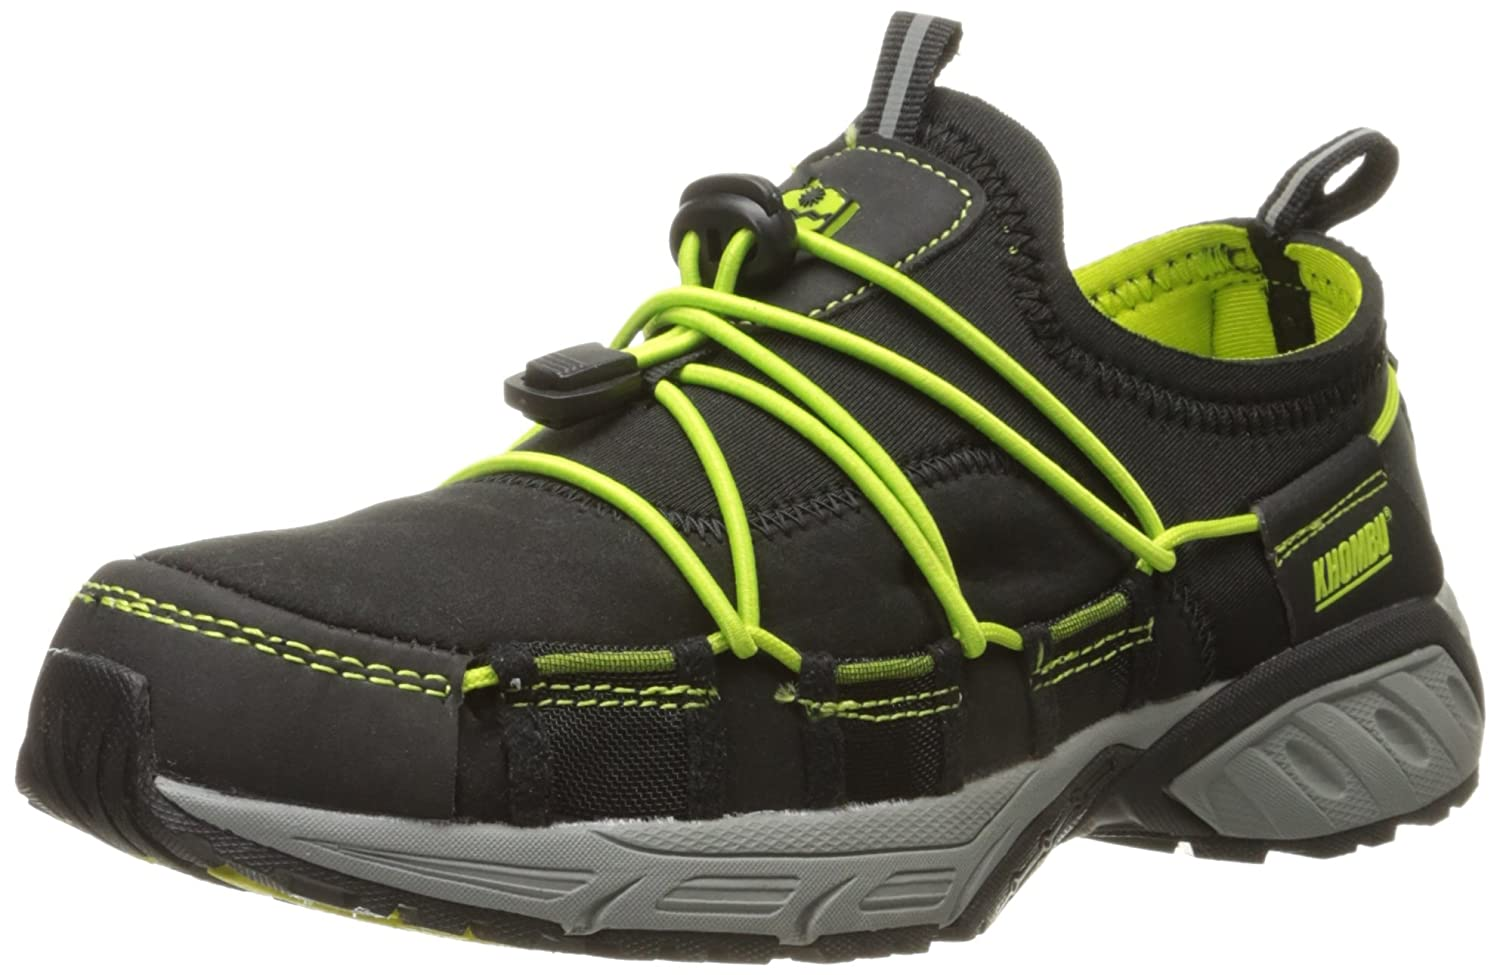 Khombu Women's Molineo Softshell Trail Shoe B015O4ZR2M 6 B(M) US|Black